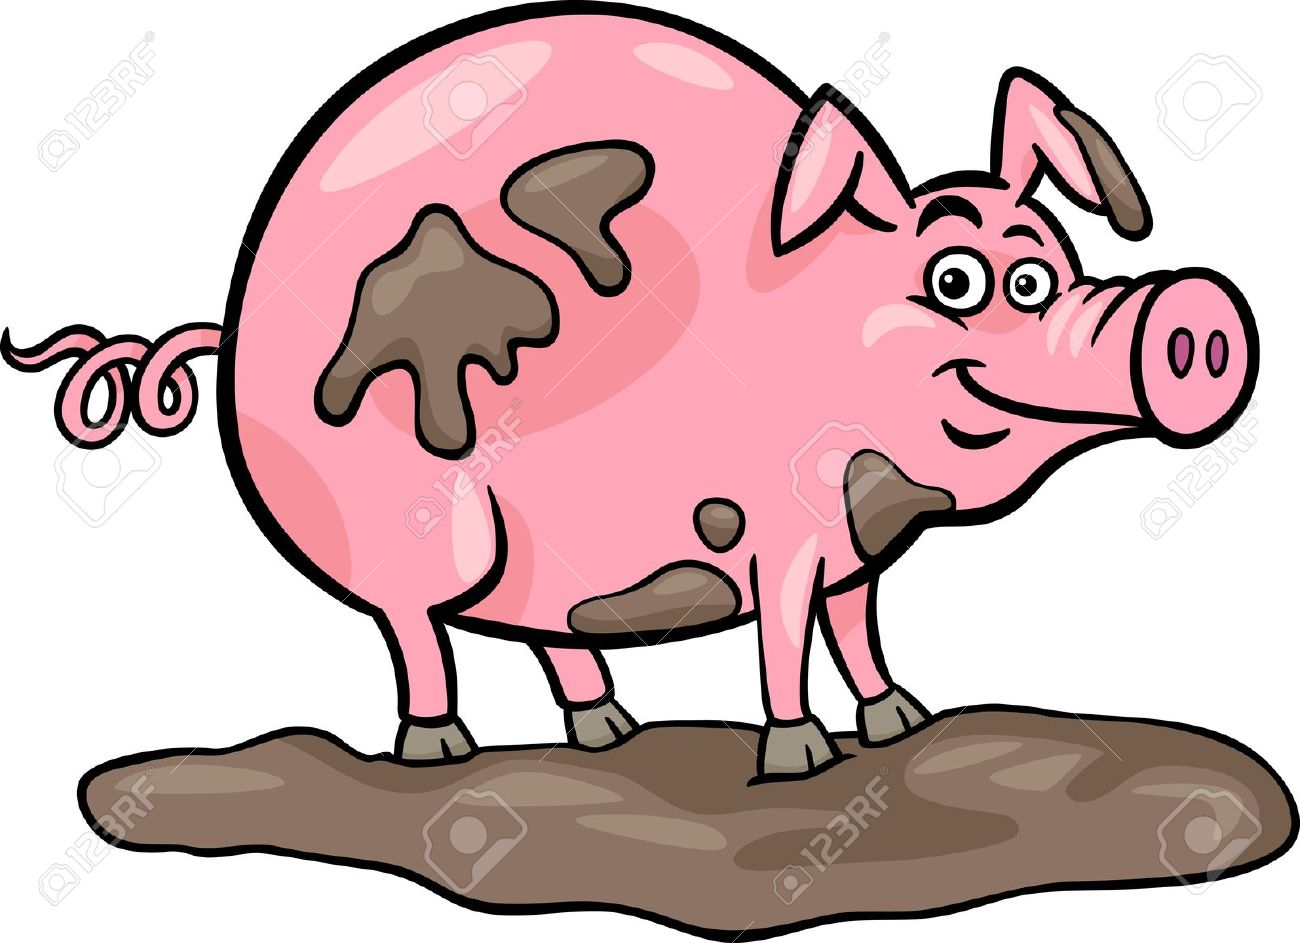 Muddy clipart clipground muddy pig clipart voltagebd Image collections